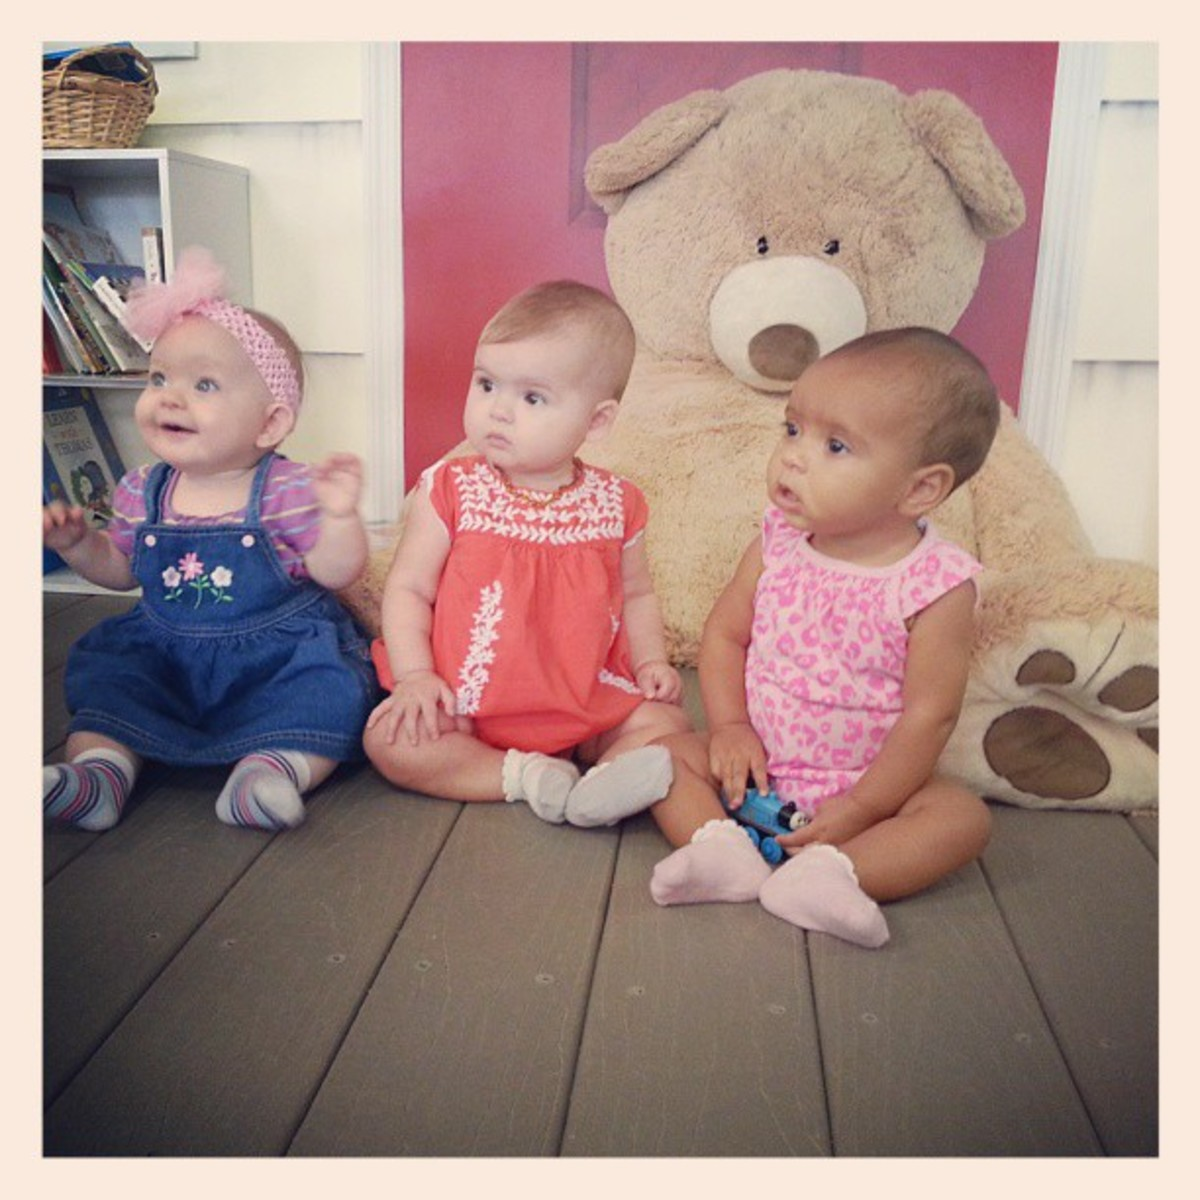 Oct. 2013 ... My granddaughter, Lily, on the right, on a play date with her two friends.